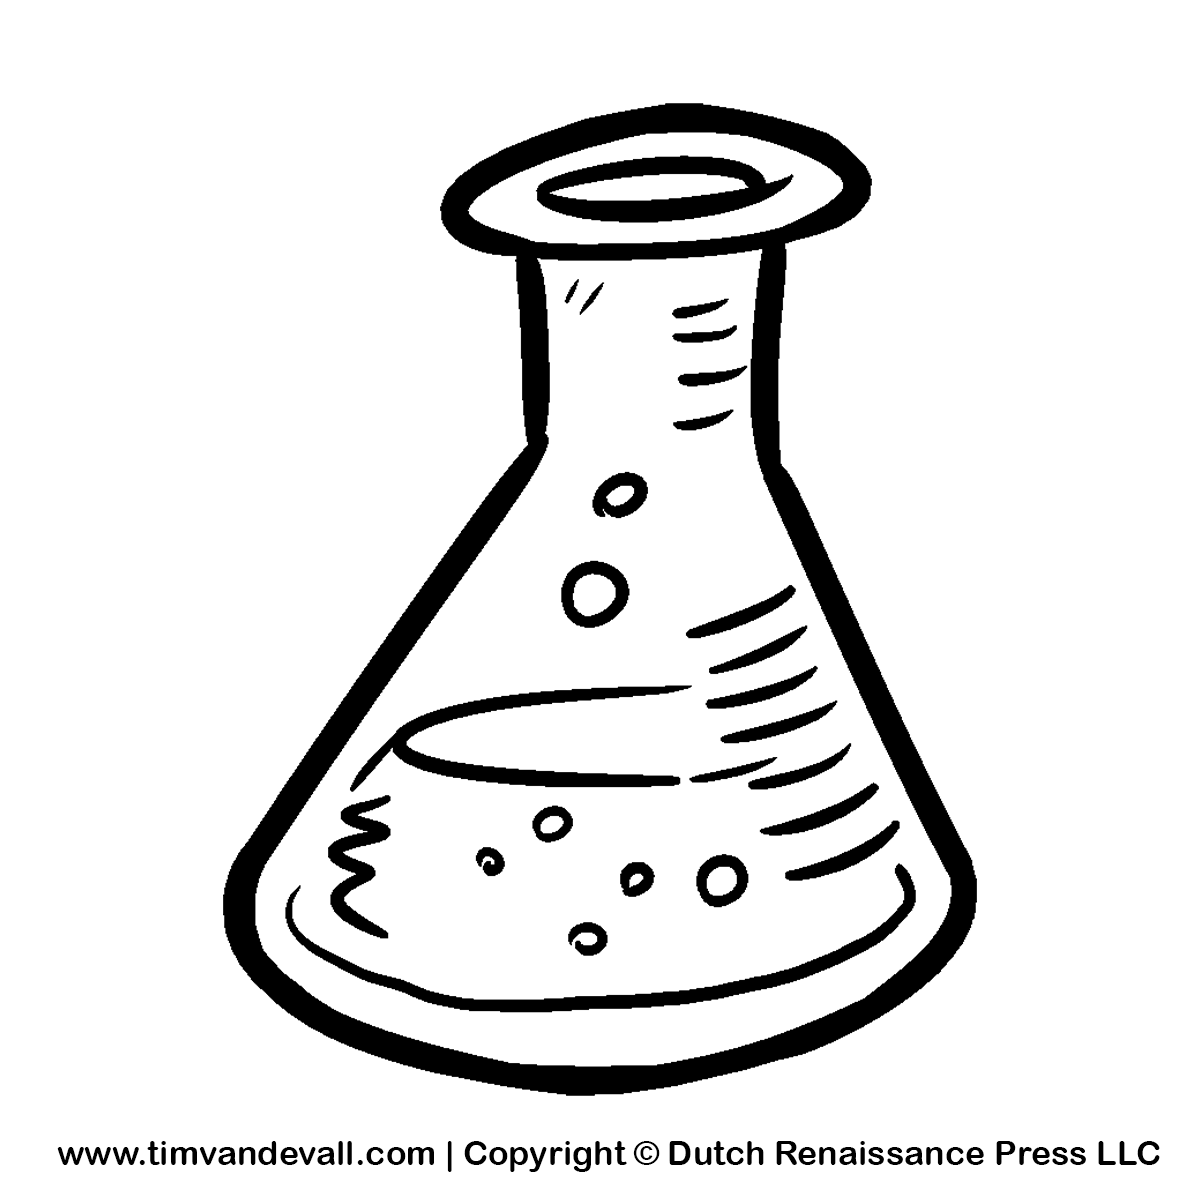 Beaker clipart sketch, Beaker sketch Transparent FREE for